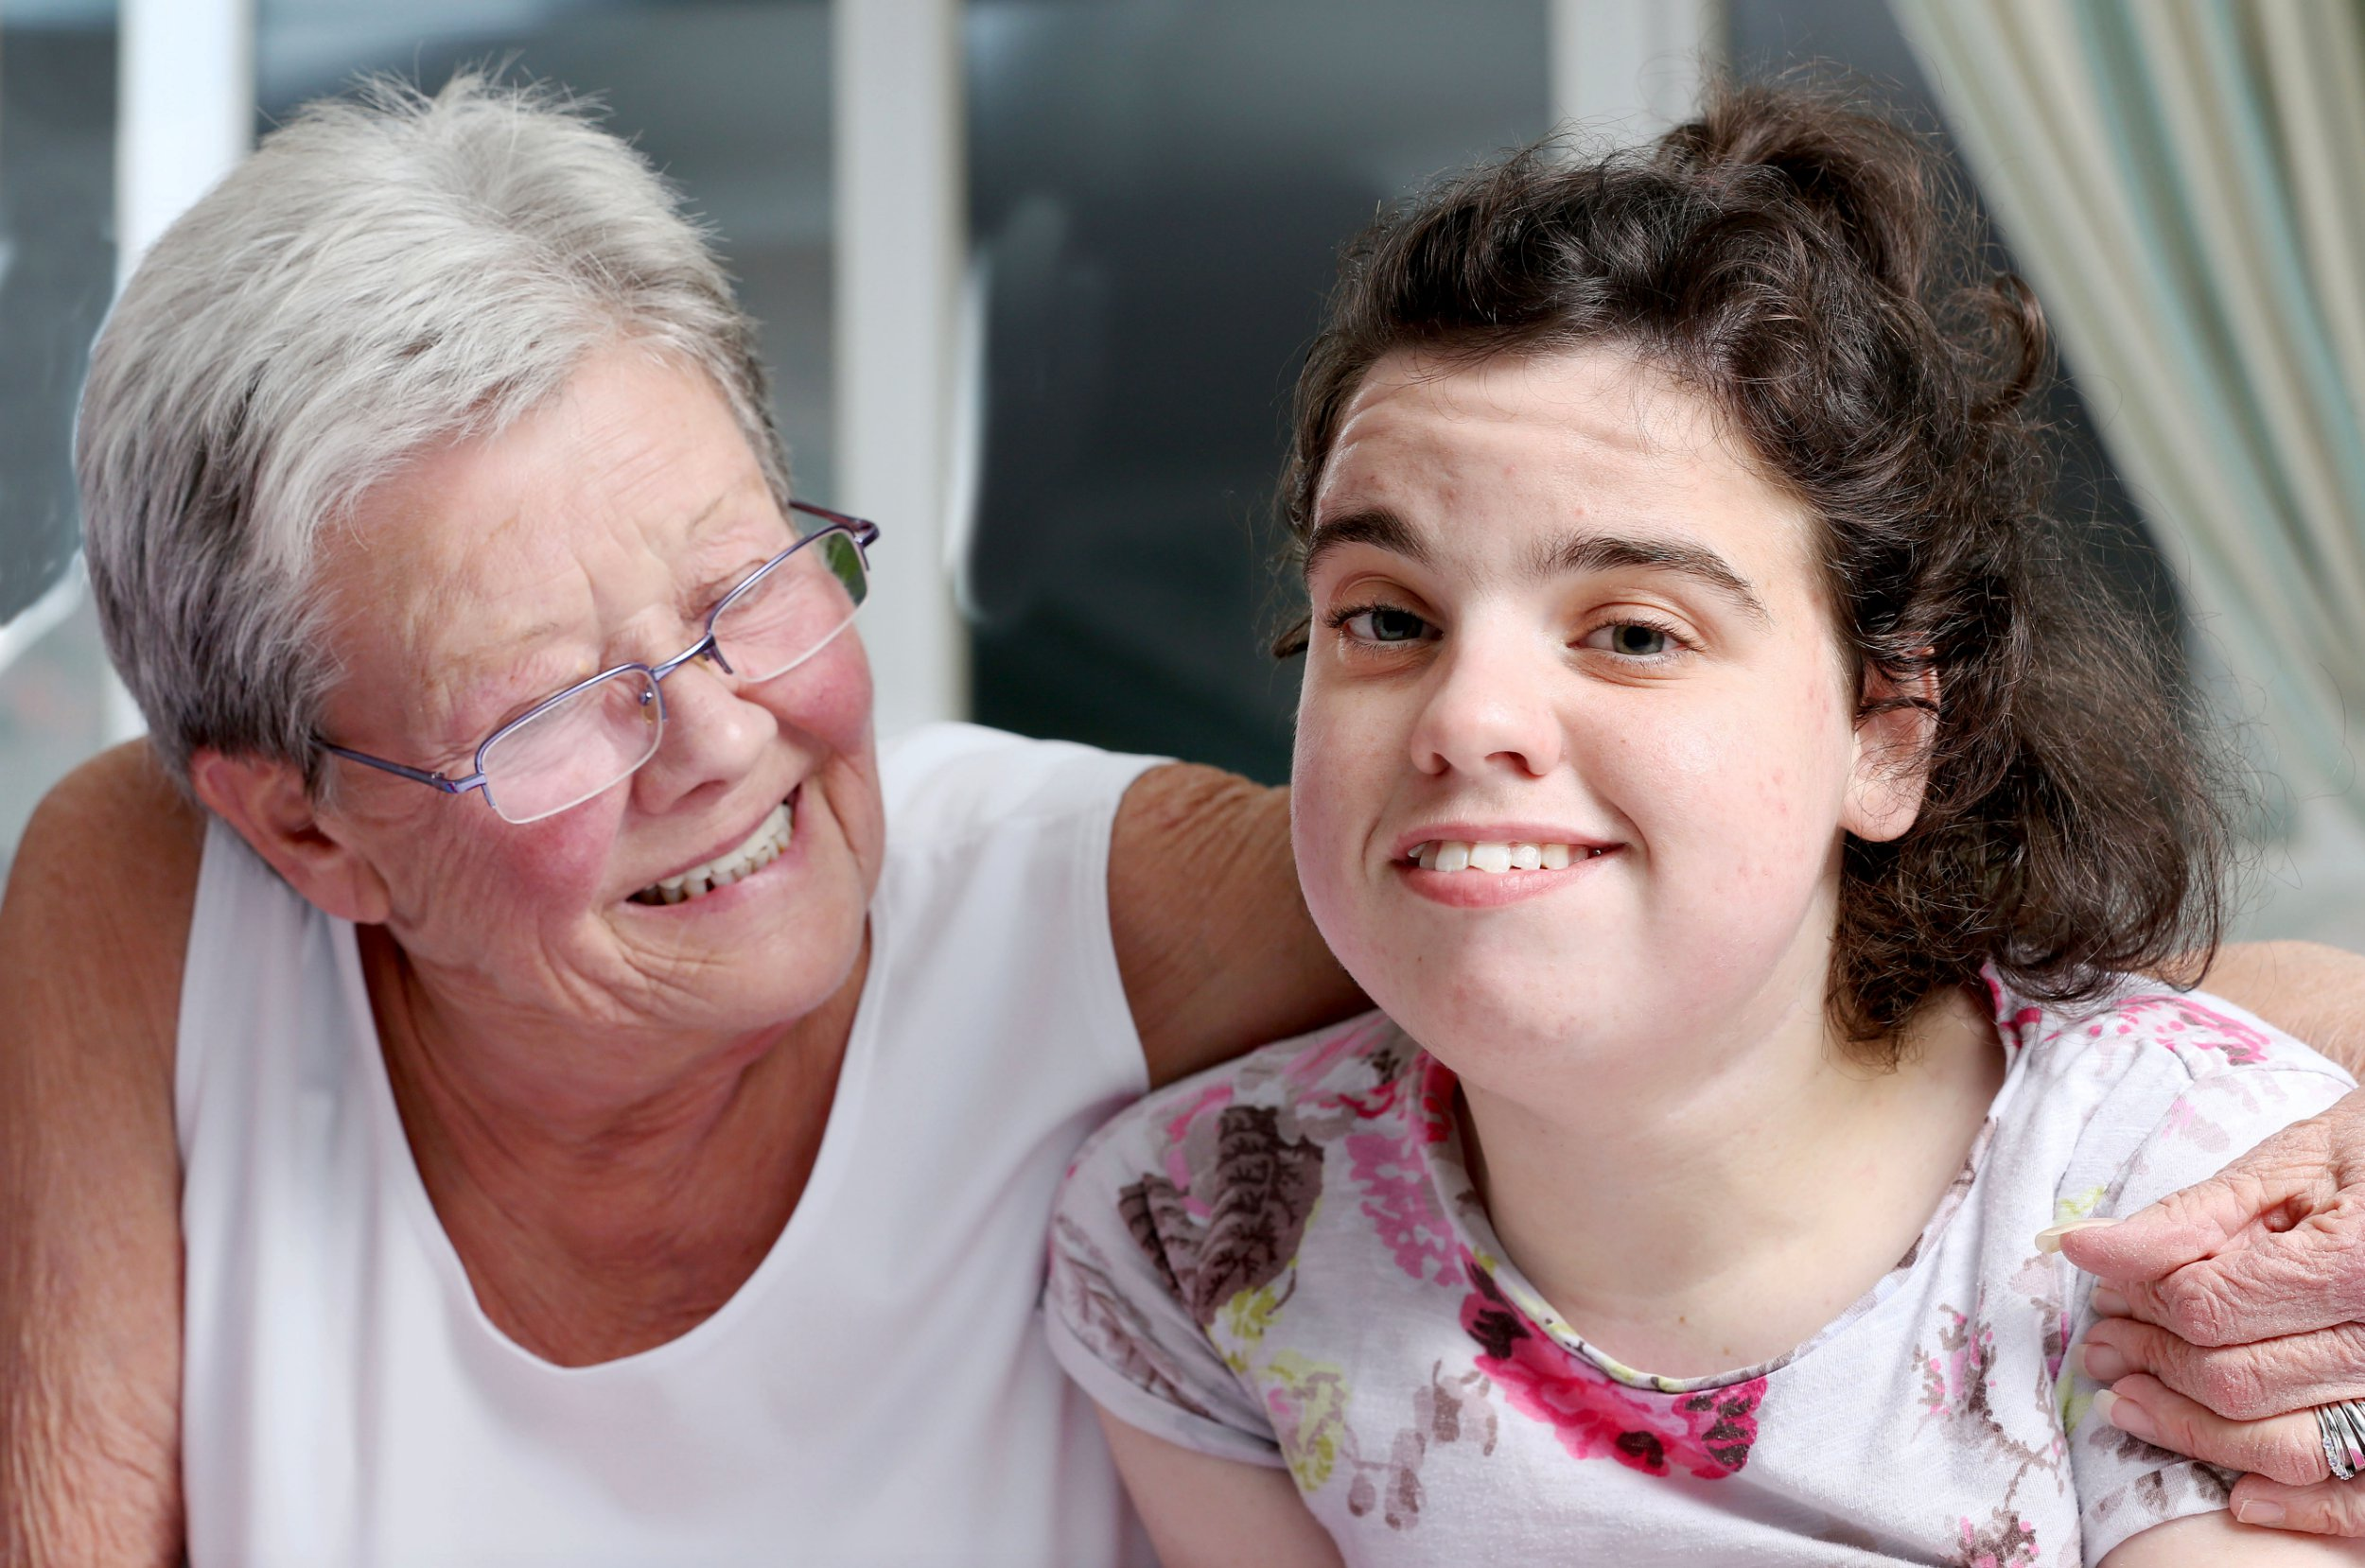 Severely disabled girl, 19, and grandmother could lose home due to benefit cuts